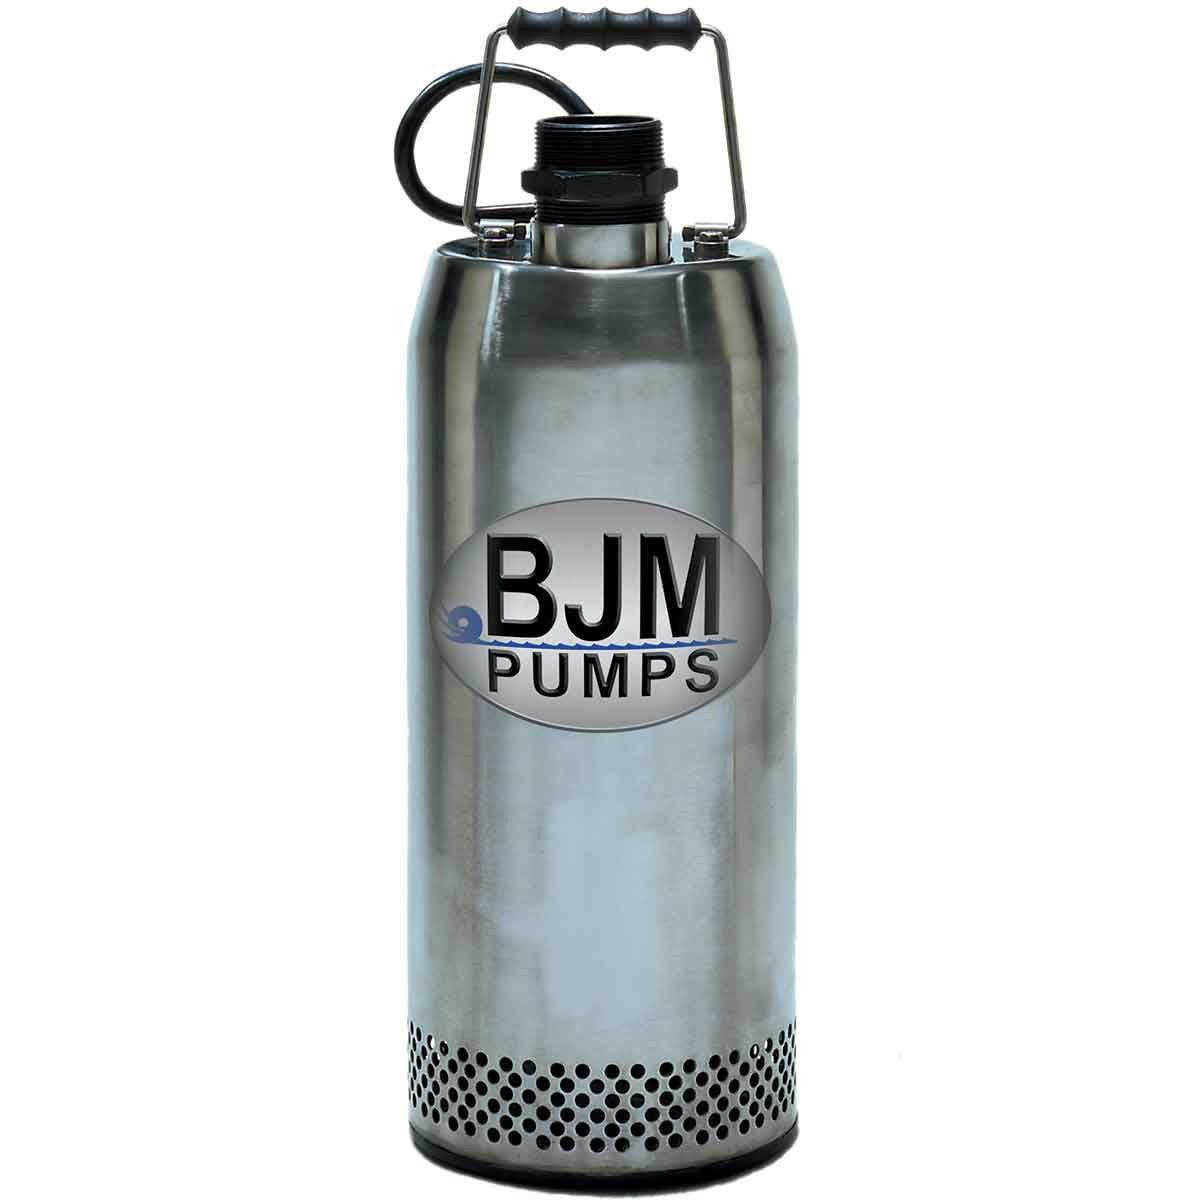 3 inch Submersible Pump 230V BJM R1520-230